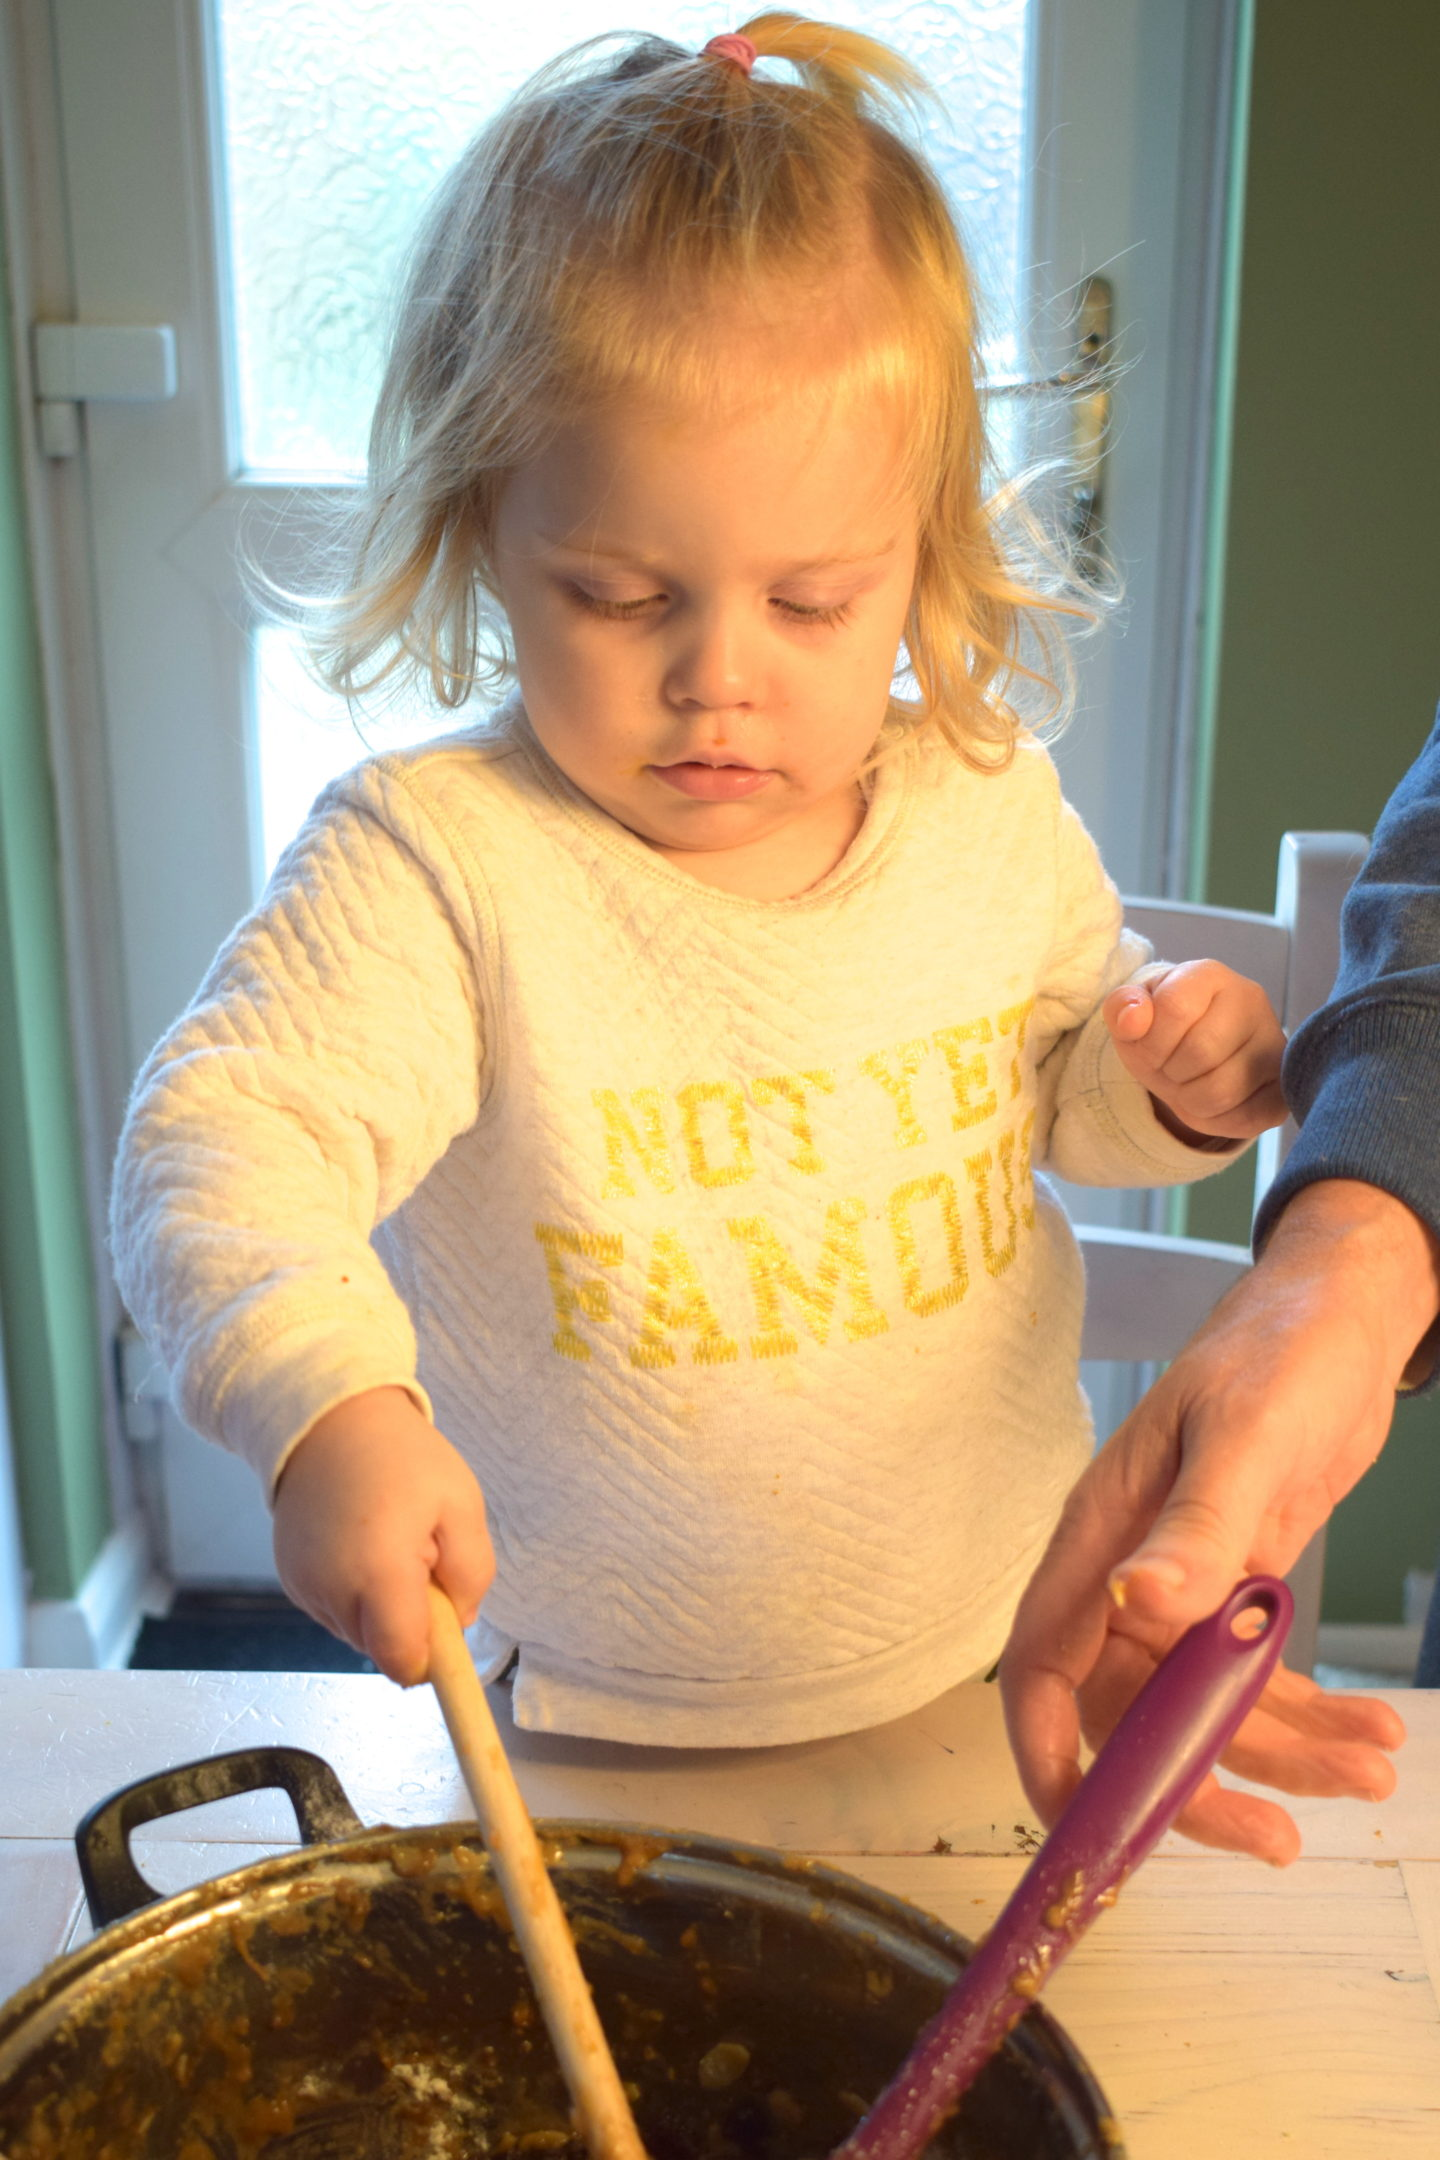 22 month old girl standing at table stirring cake mixture